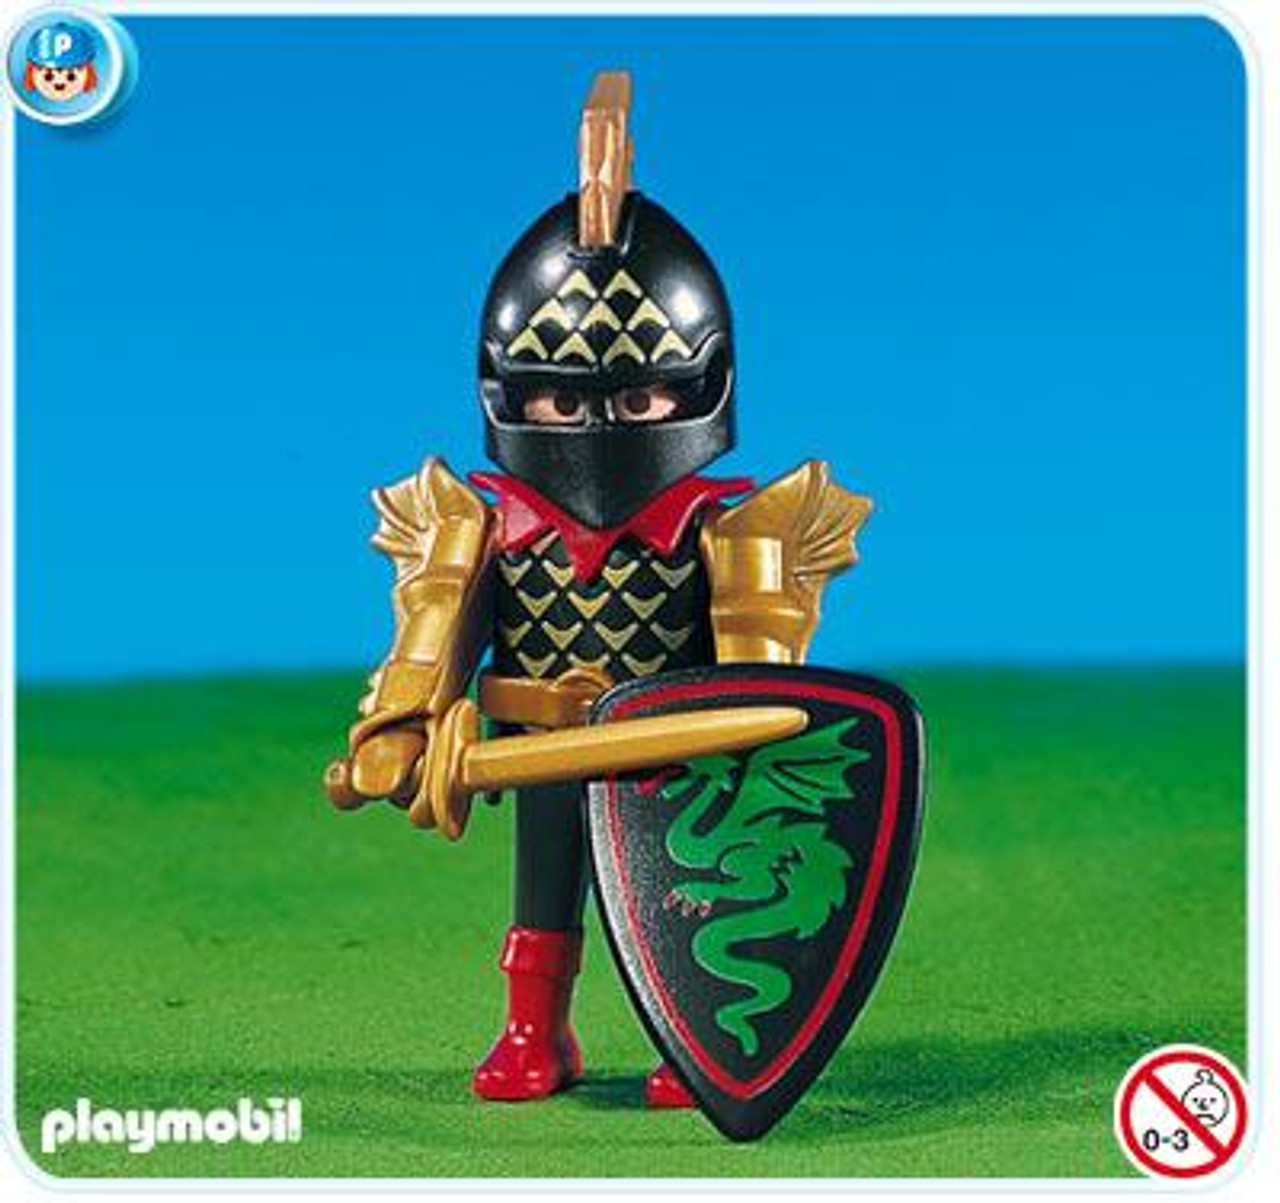 Playmobil Dragon Land Green Dragon Leader Set #7670